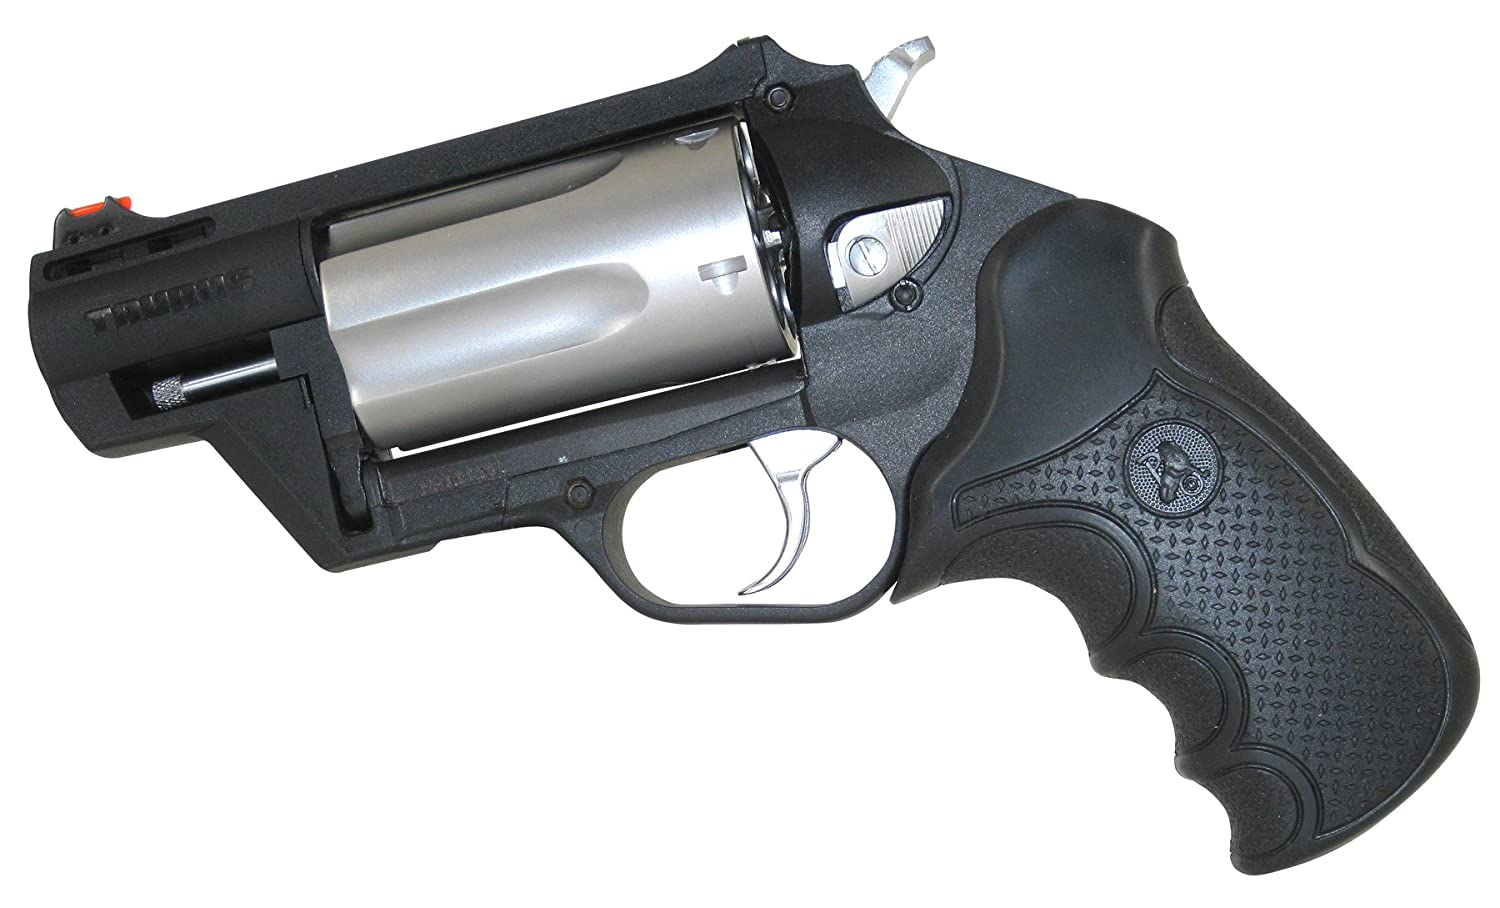 Pachmayr Diamond Pro Grip for Taurus Compact Public Defender with Polymer  Frame